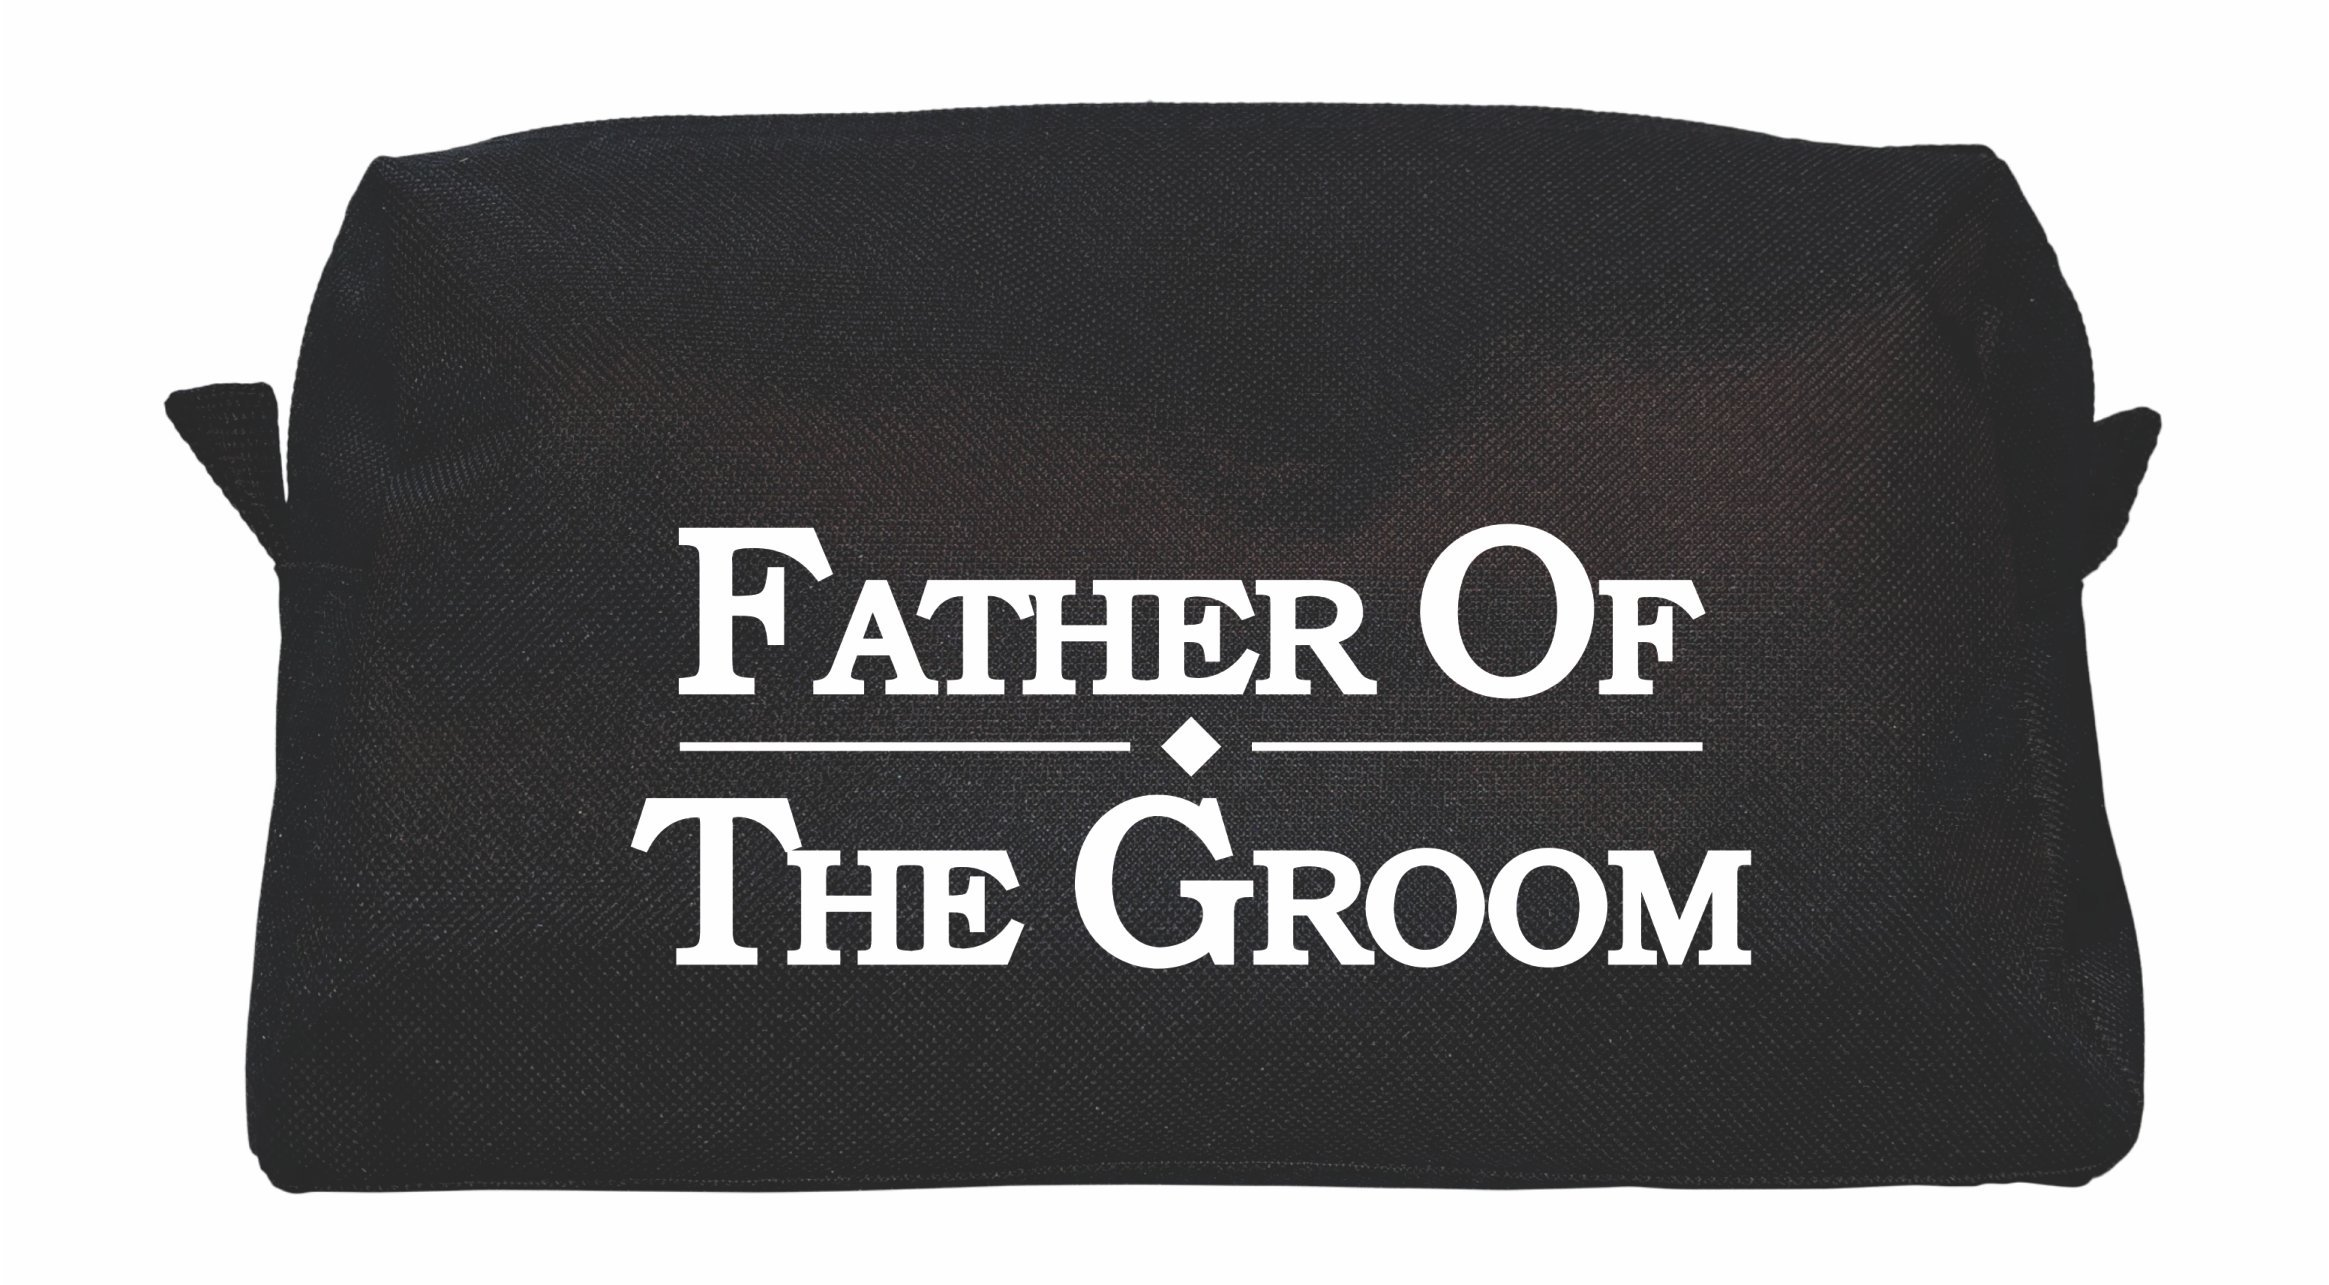 TSO Mens Wedding Party Toiletry Bag - Black Dopp Bag and Travel Toiletry Bag for Holding All Your Needs (9.25'' x 5'' x 3.75'') (Father of the Groom)